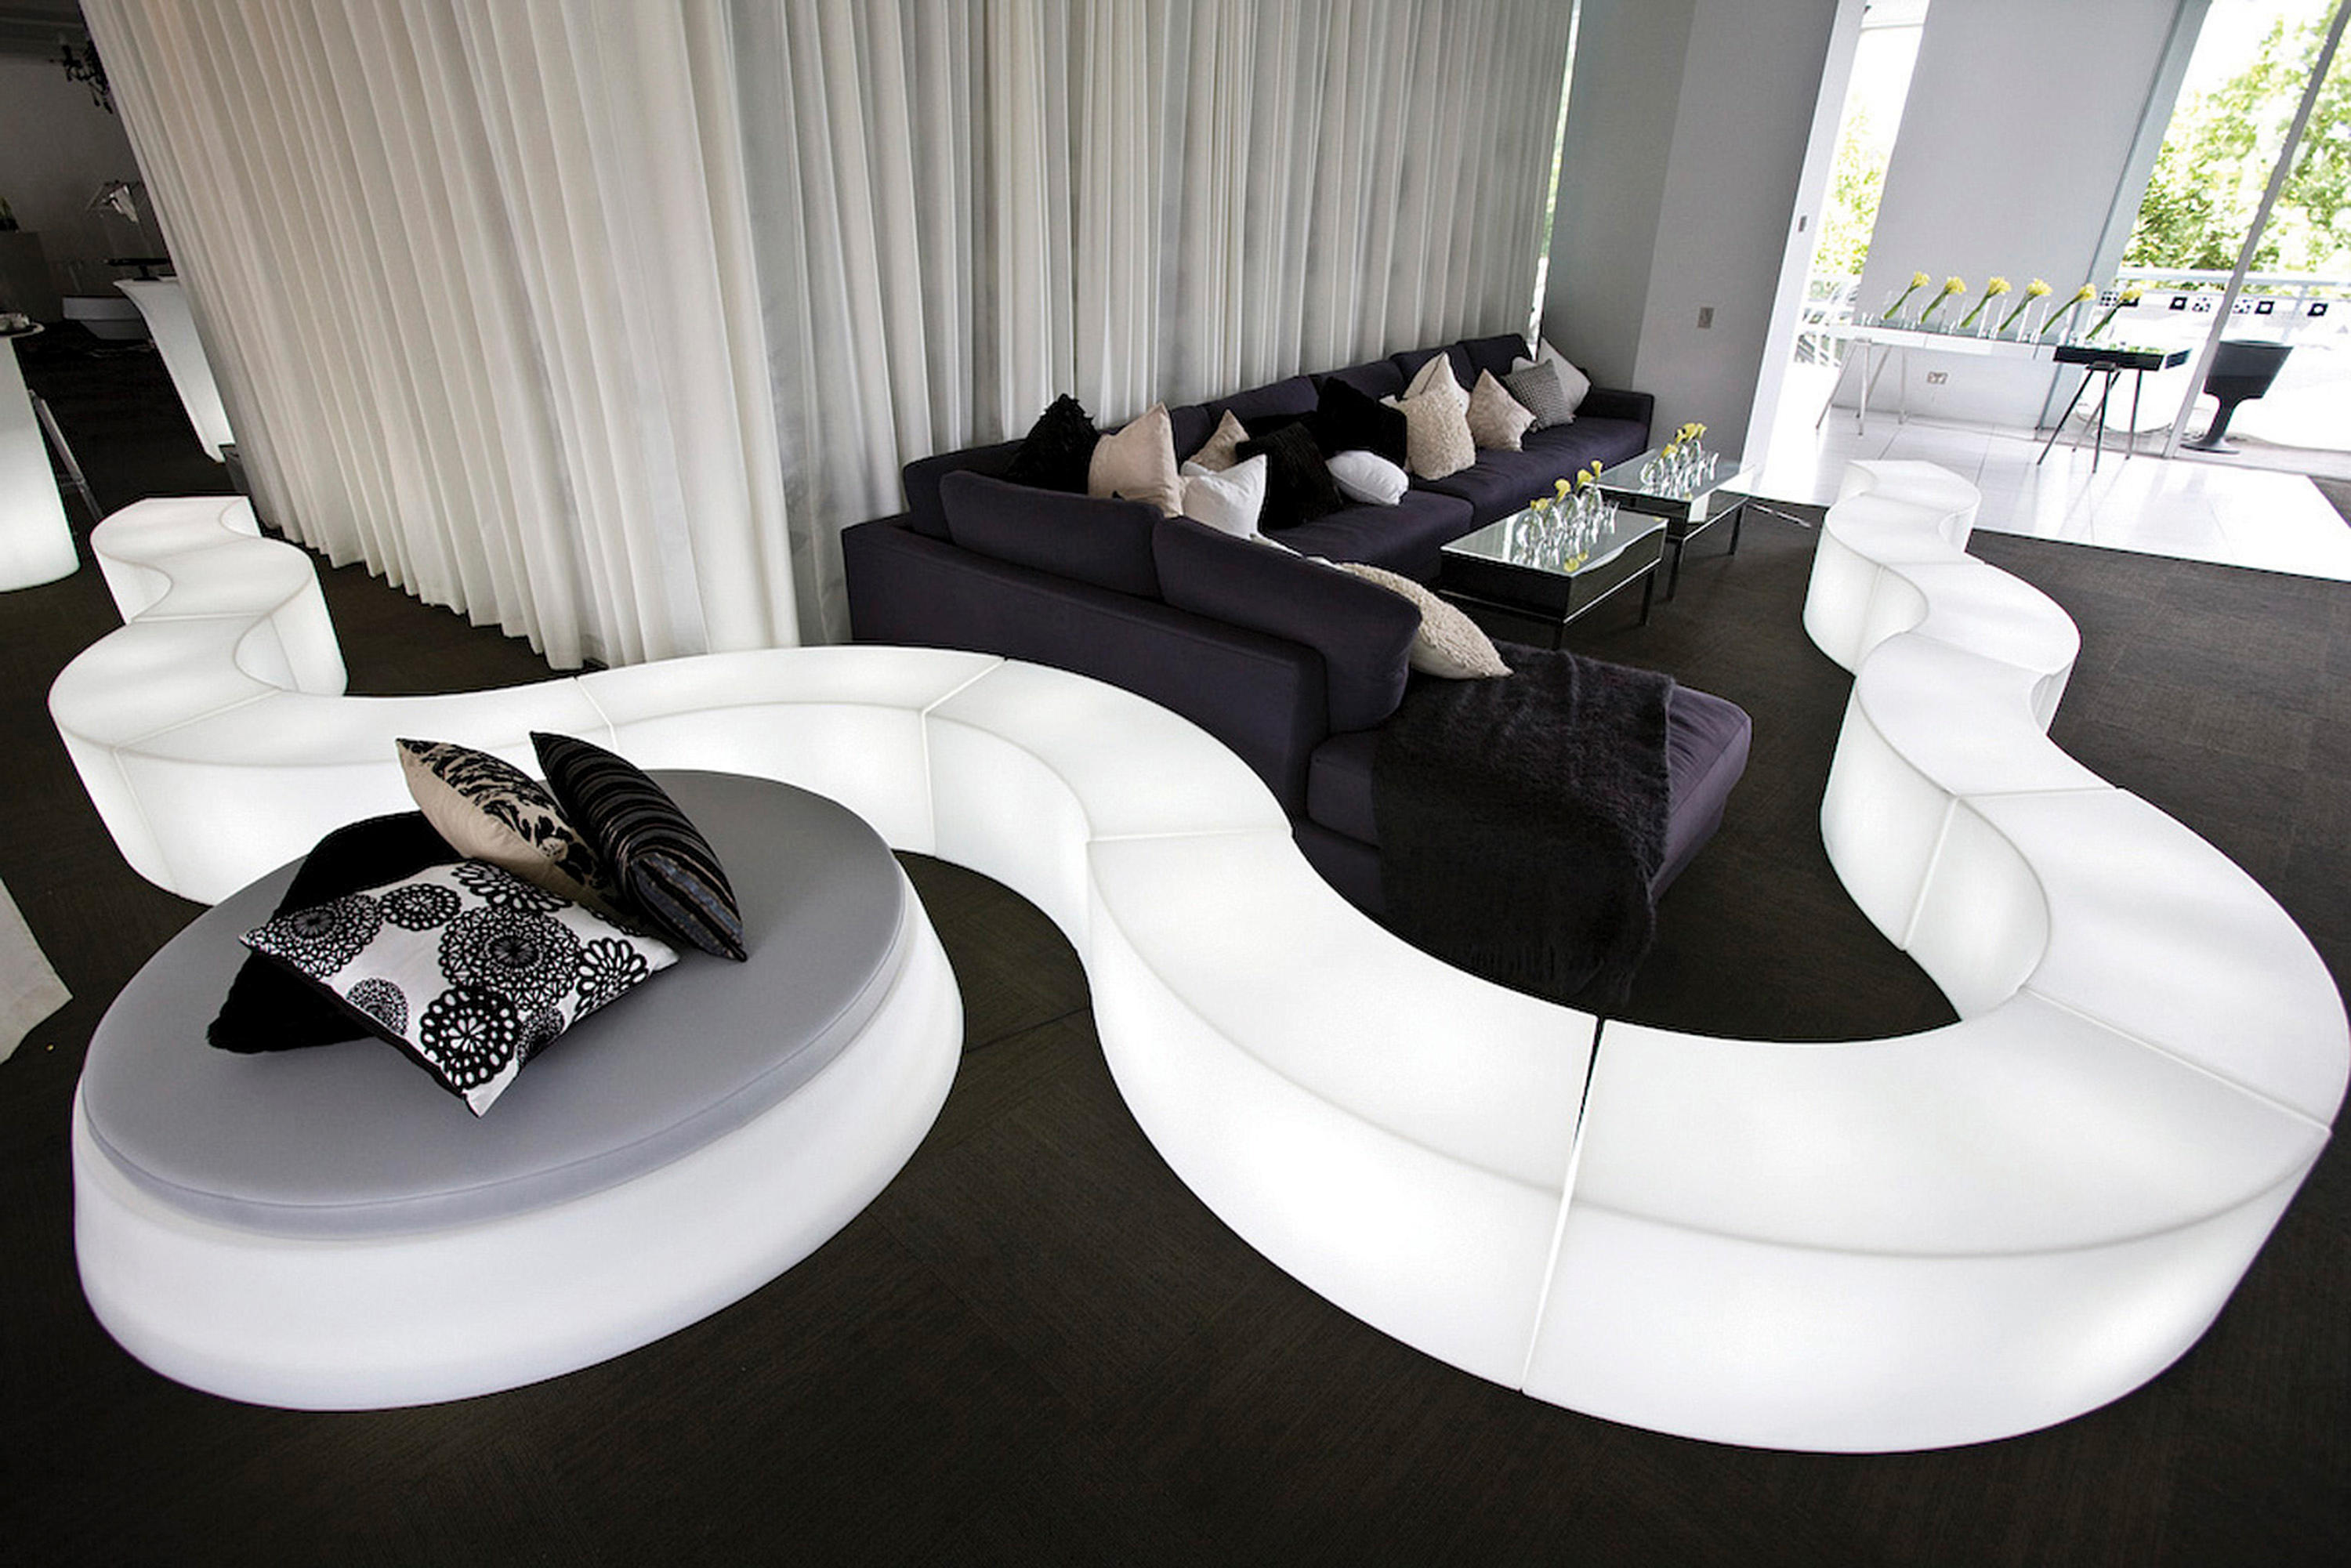 Snake Modular Seating Elements From Slide Architonic